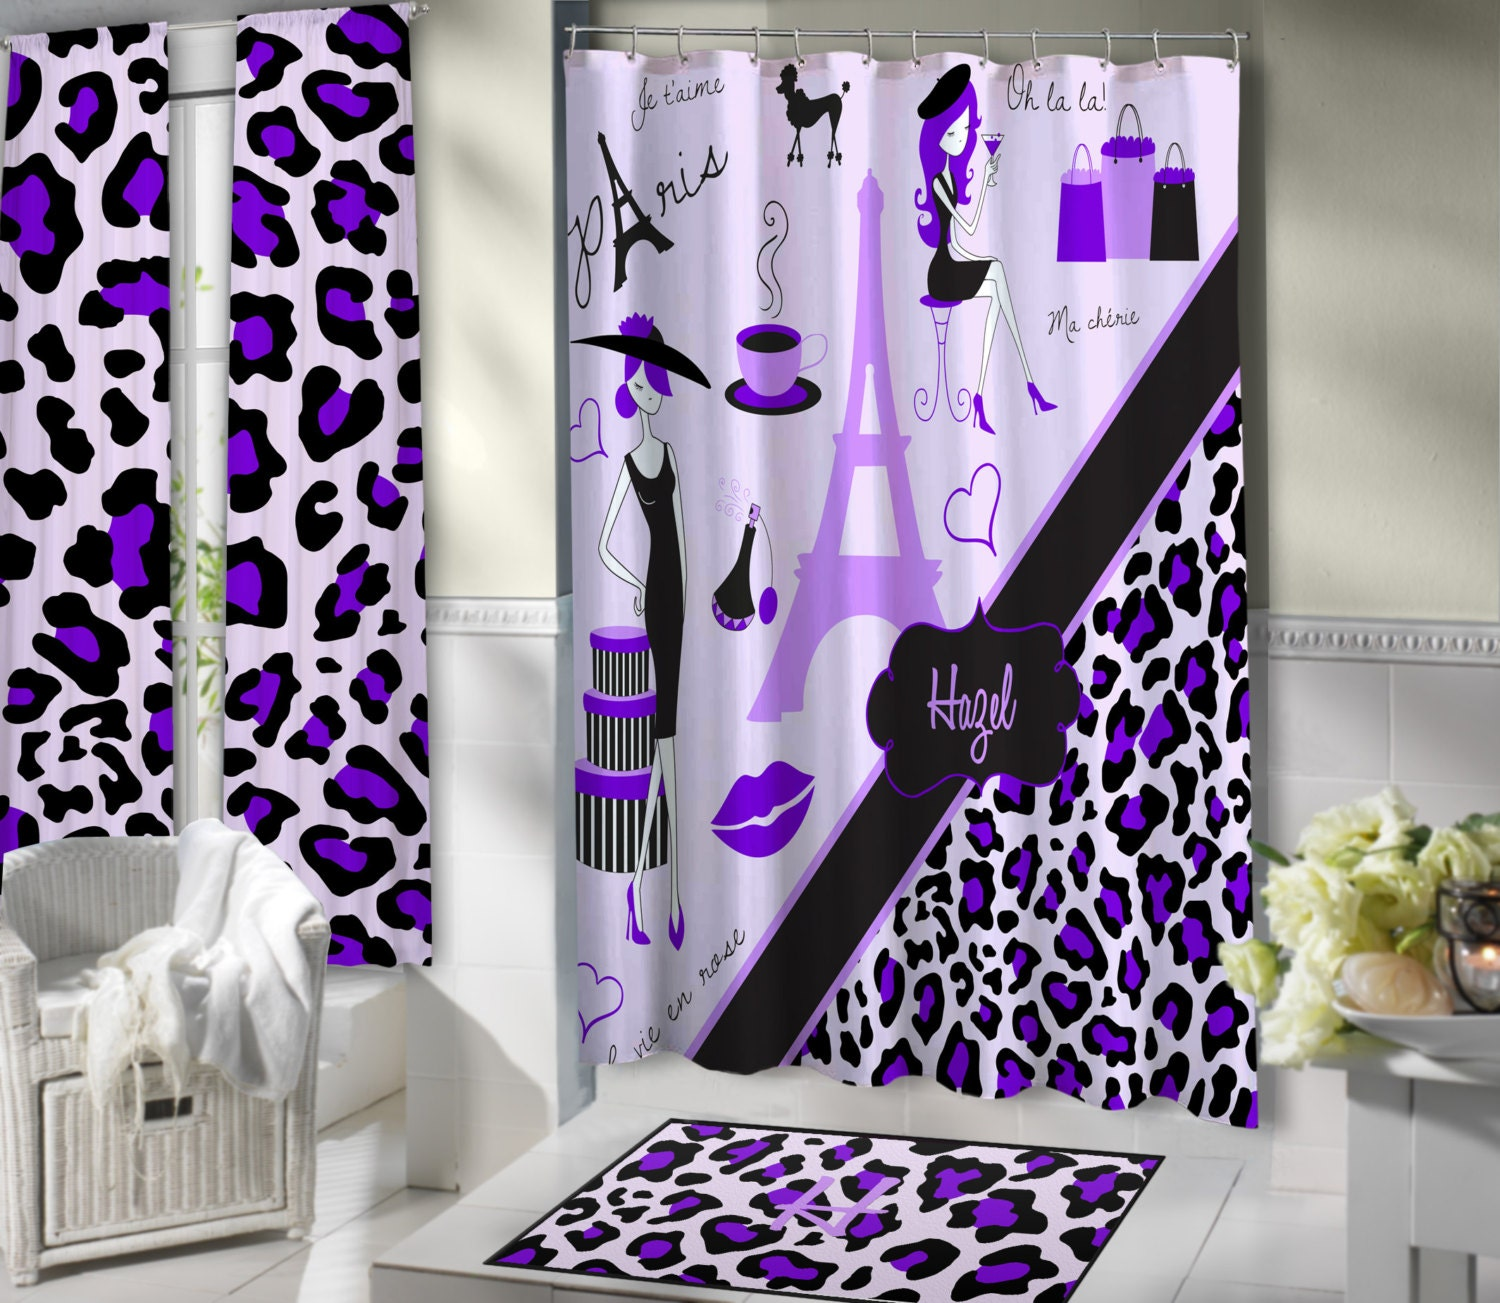 Lavender paris shower curtains paris themed bathroom sets for French themed bathroom accessories